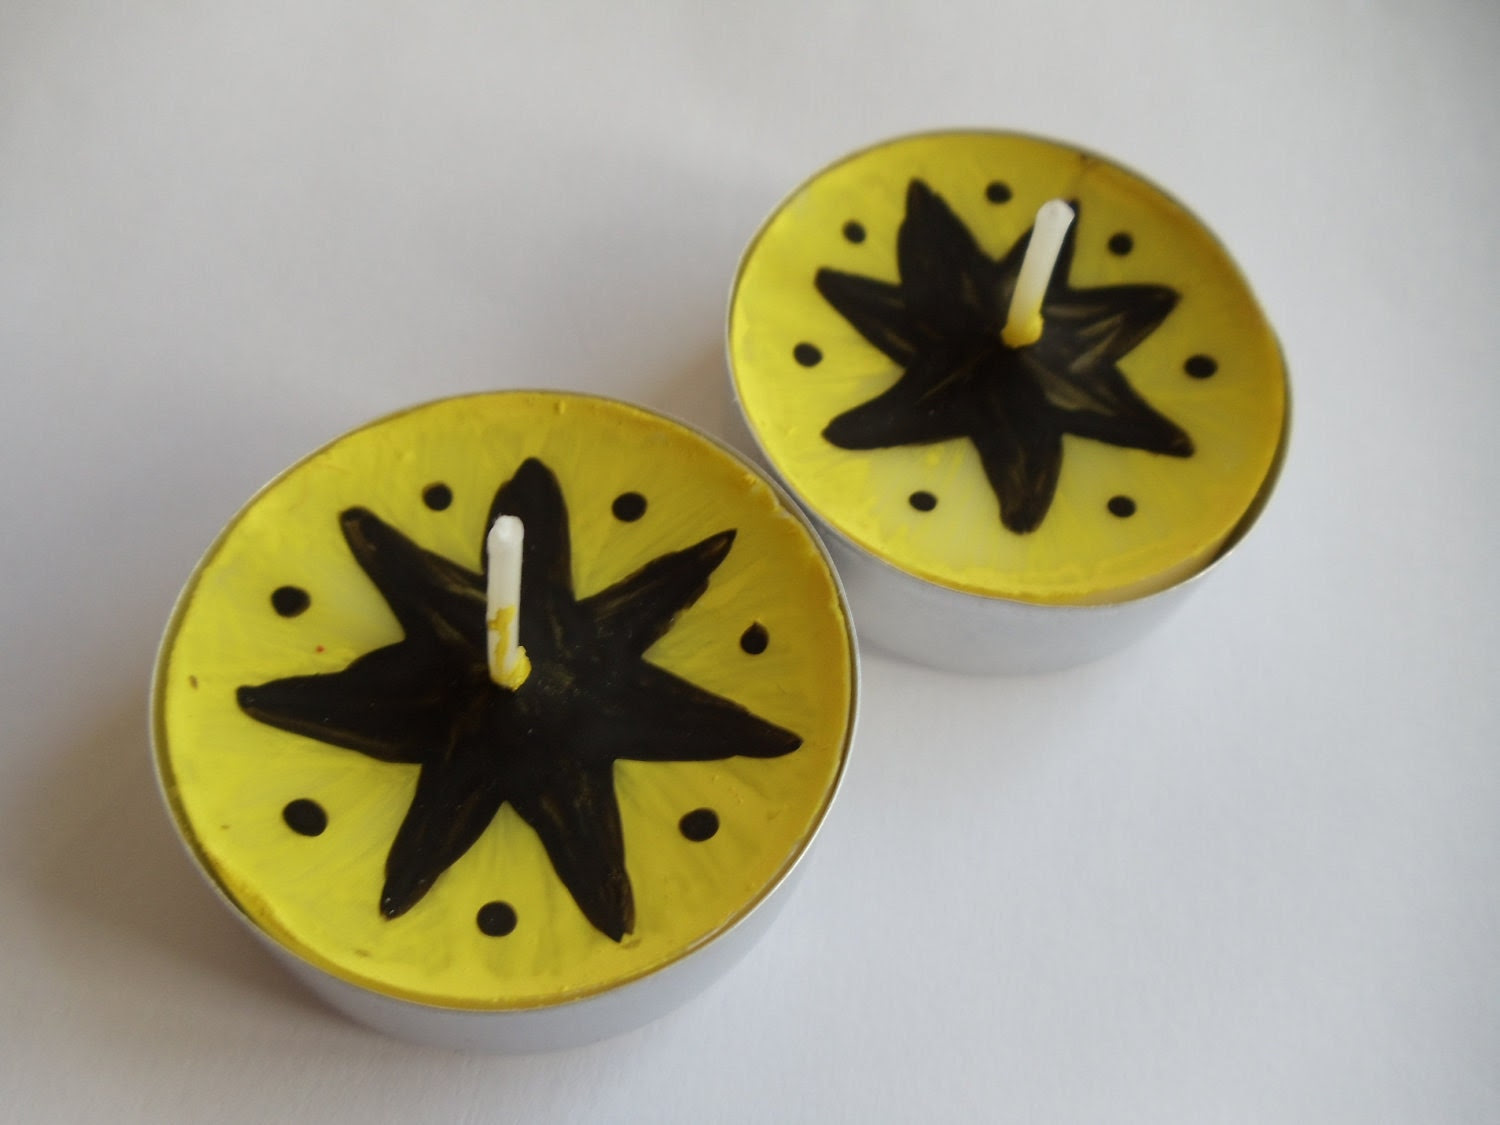 Pair of Decorative Handed-Painted Tea Lights - Black and Yellow Flower